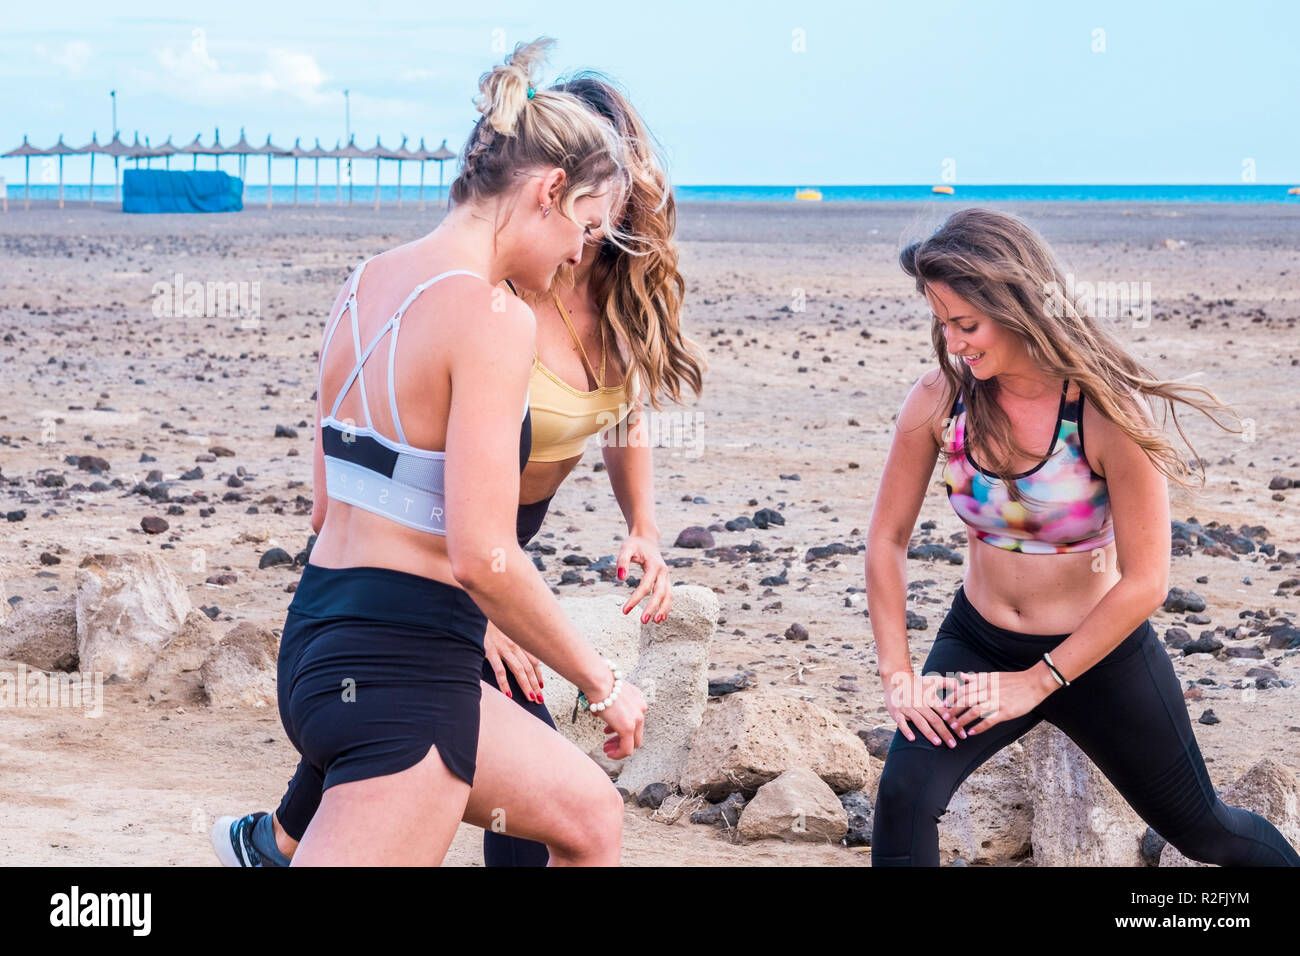 group of three of beautiful model caucasian young women doing pilates at the beach in free leisure activity. nice lifestyle healthy and in contact with the nature. ocean in background for great sport and active lifestyle - Stock Image